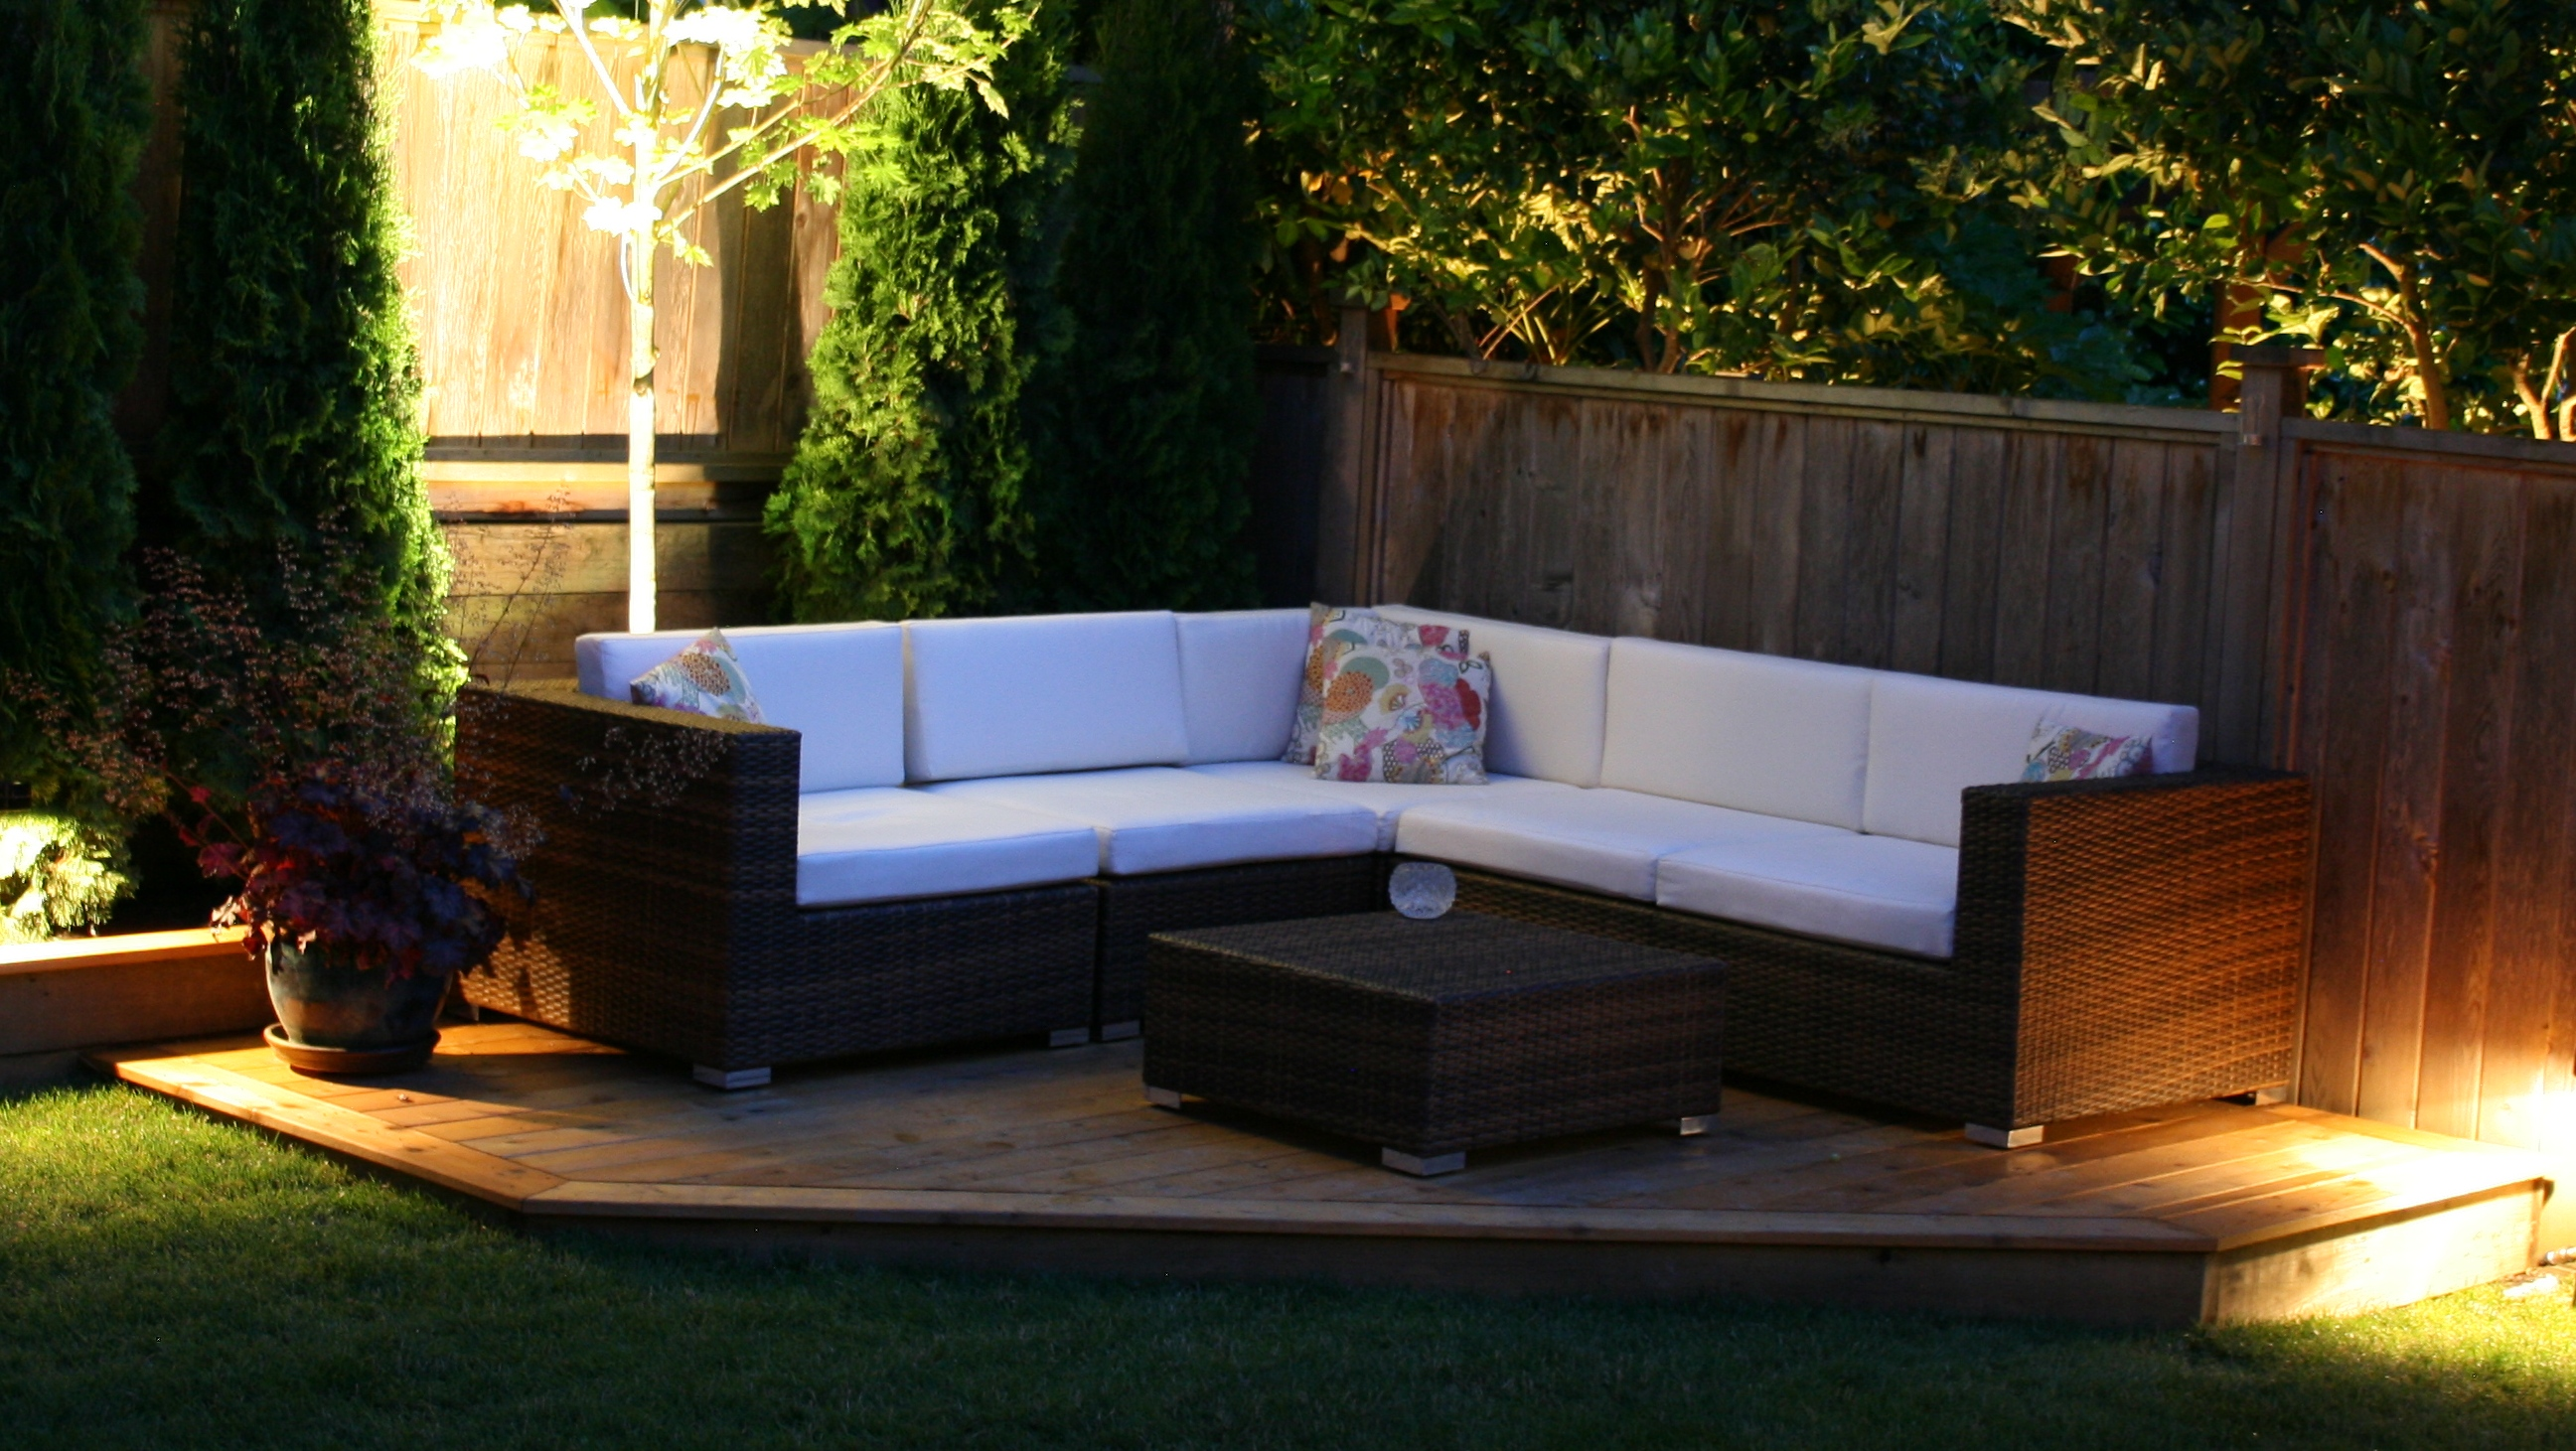 The Kitsilano Outdoor Patio Sectional Vancouver Sofa pany